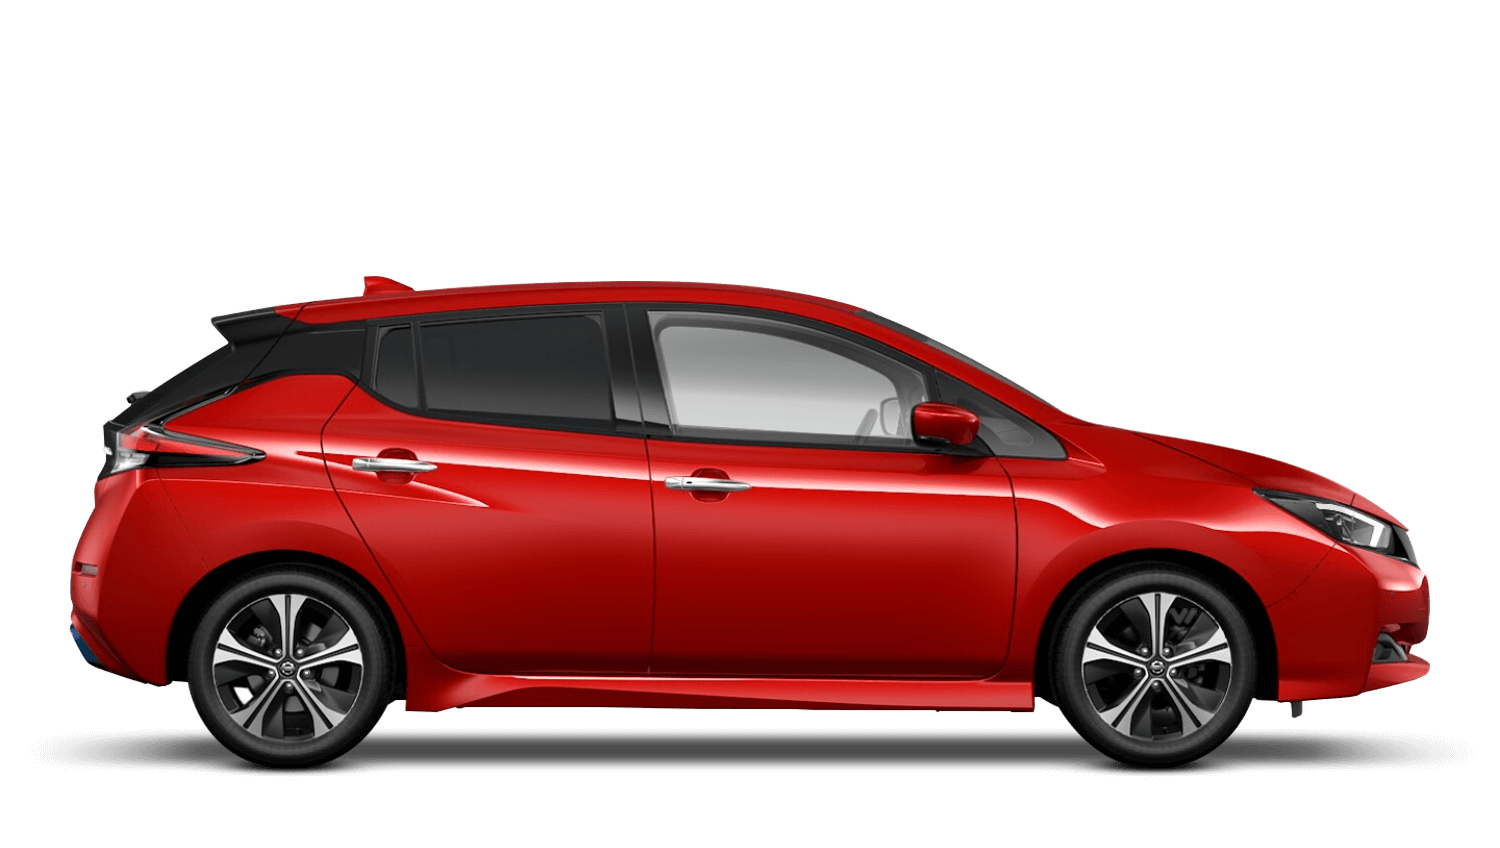 Flame Red Nissan LEAF